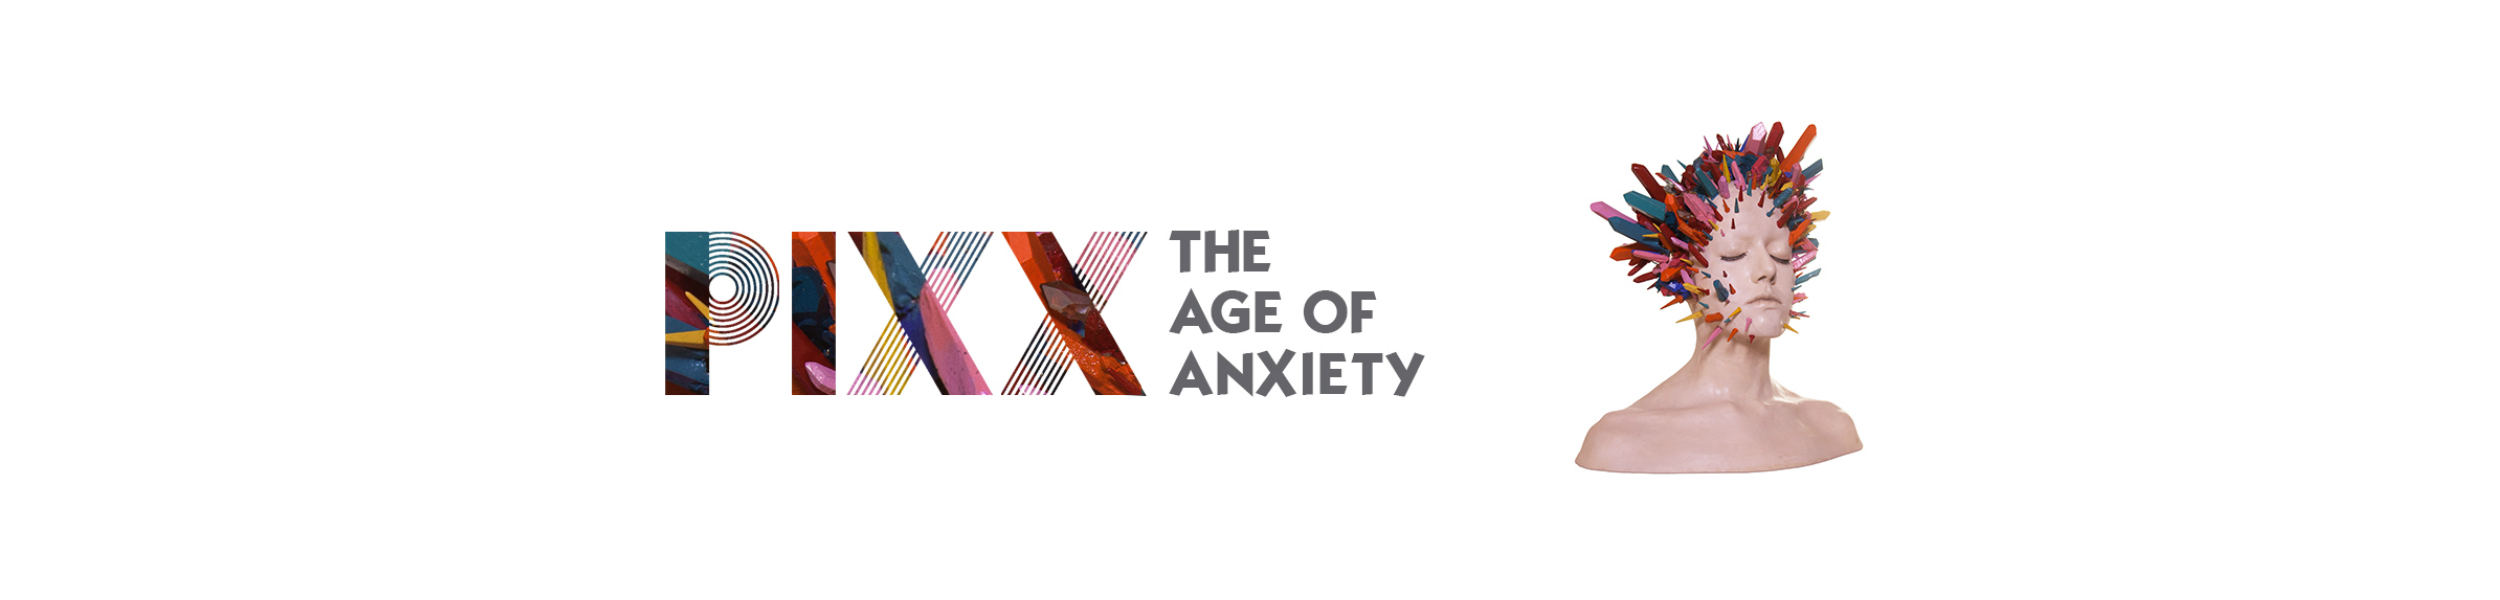 Pixx - Debut Album 'The Age Of Anxiety', 'I Bow Down' Video